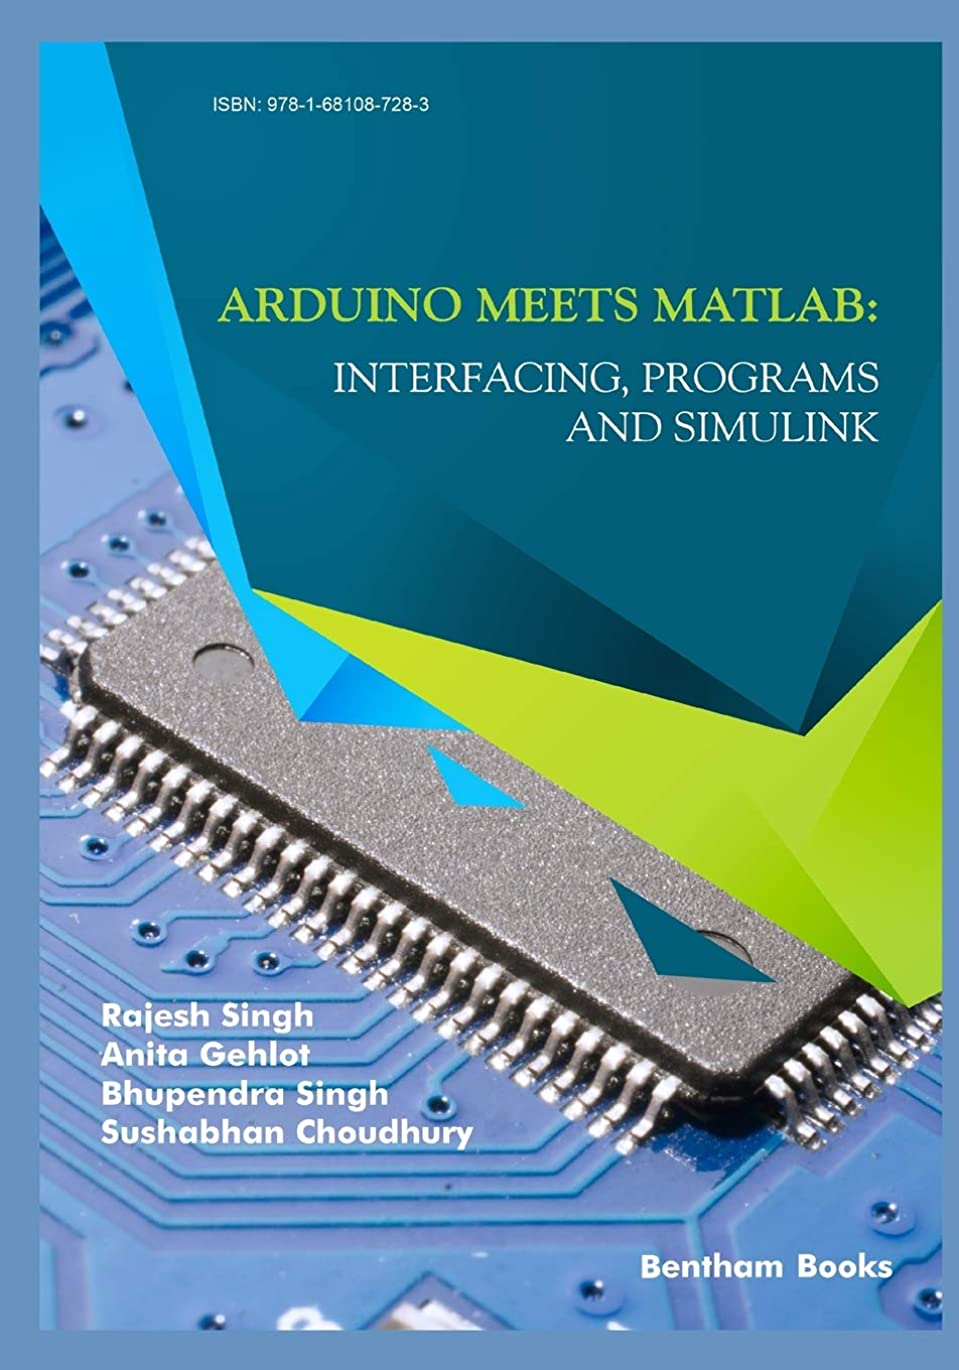 へこみコンベンションミルクArduino meets MATLAB: Interfacing, Programs and Simulink